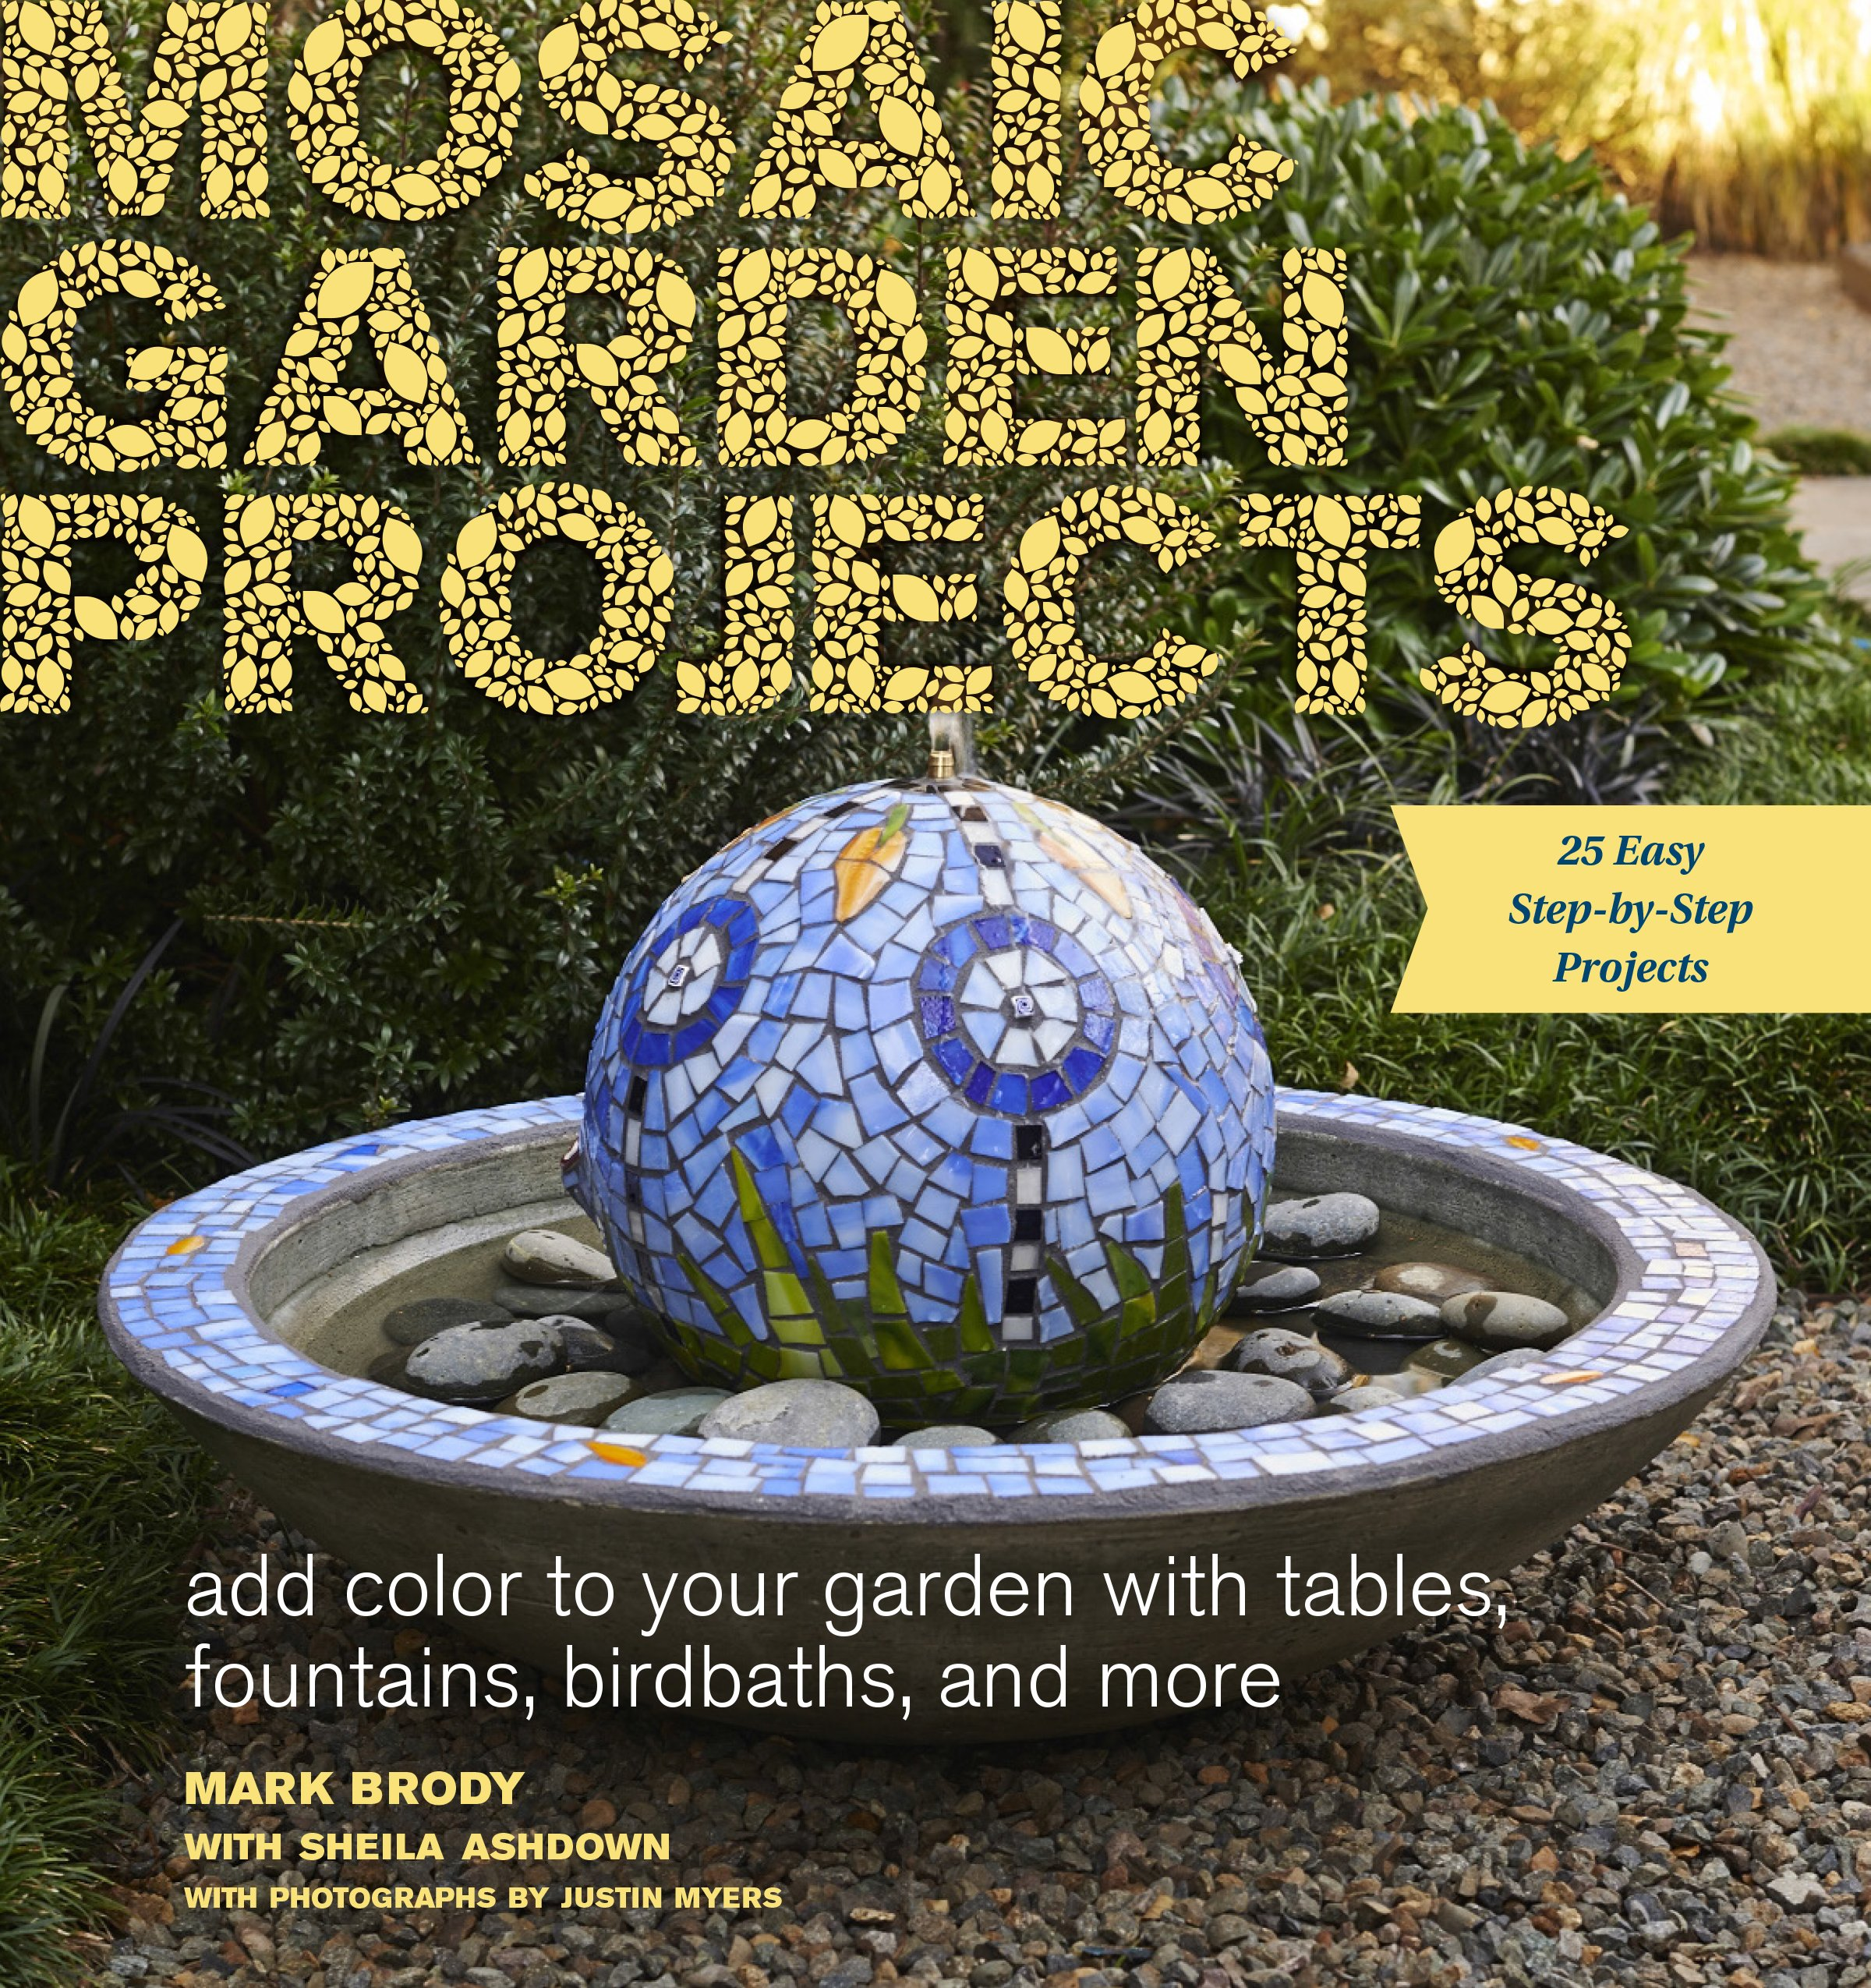 Mosaic Garden Projects: Add Color To Your Garden With Tables, Fountains,  Bird Baths, And More: Mark Brody, Sheila Ashdown: 9781604694871:  Amazon.com: Books